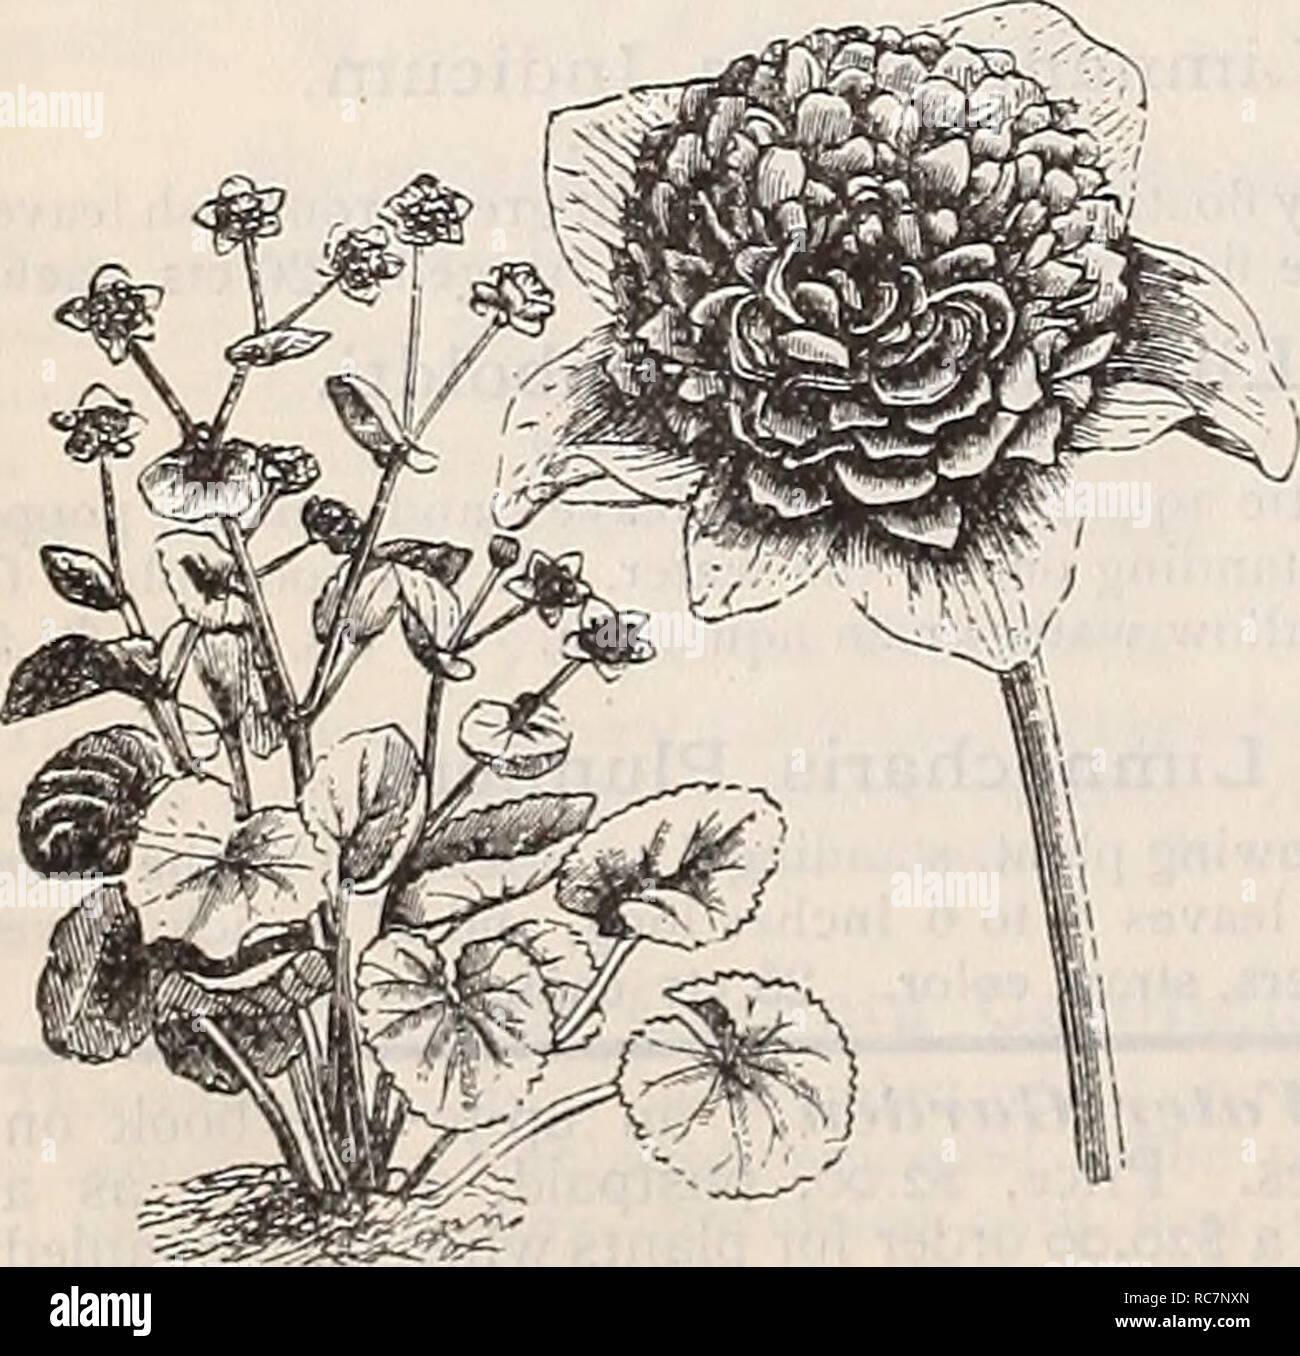 """. Dreer's garden calendar : 1898. Seeds Catalogs; Nursery stock Catalogs; Gardening Catalogs; Flowers Seeds Catalogs; Vegetables Seeds Catalogs. Ouvirandra Fenestralis. MISCEI^LANEOUS HARDY AQUATICS. Acorus Japonica Varieg-ata (Varieg-ated Sweet Flag"""") . 1 he foliage of this plant is beautifully striped with white. It grows well in dry or moist soils. One of the finest variegated plants in cultivation. 25 cts. each; §2 50 per doz. Acorns Gramineus Varieg-atus. Dwarf growing, with leathery leaves, beautifully margined with white; a handsome plant for margins or pot culture. 20 cts. each. B - Stock Image"""